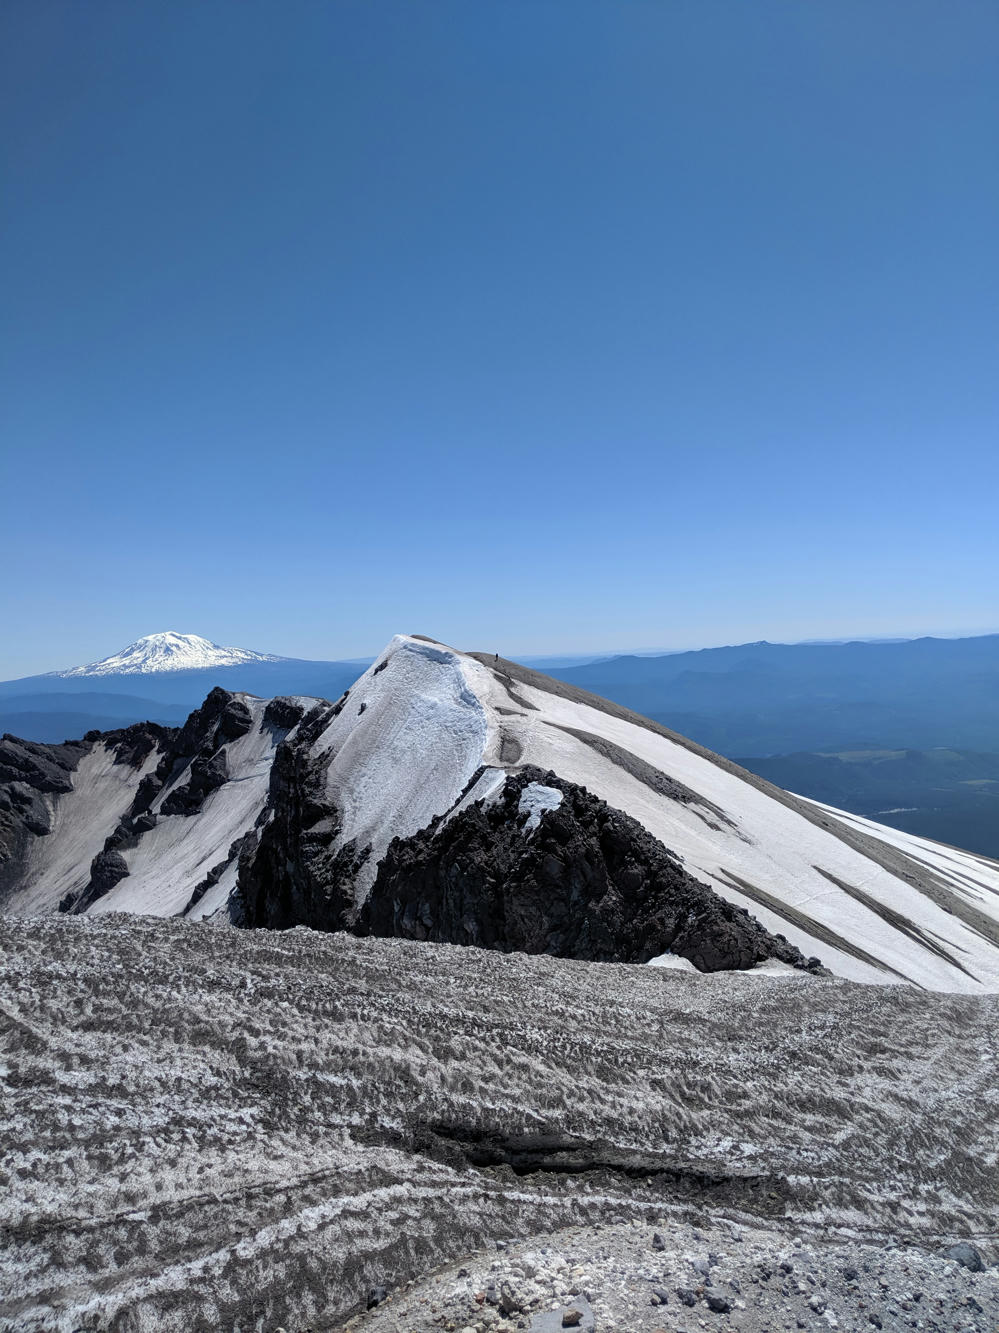 The summit of St. Helen's, with Adam's in the distance